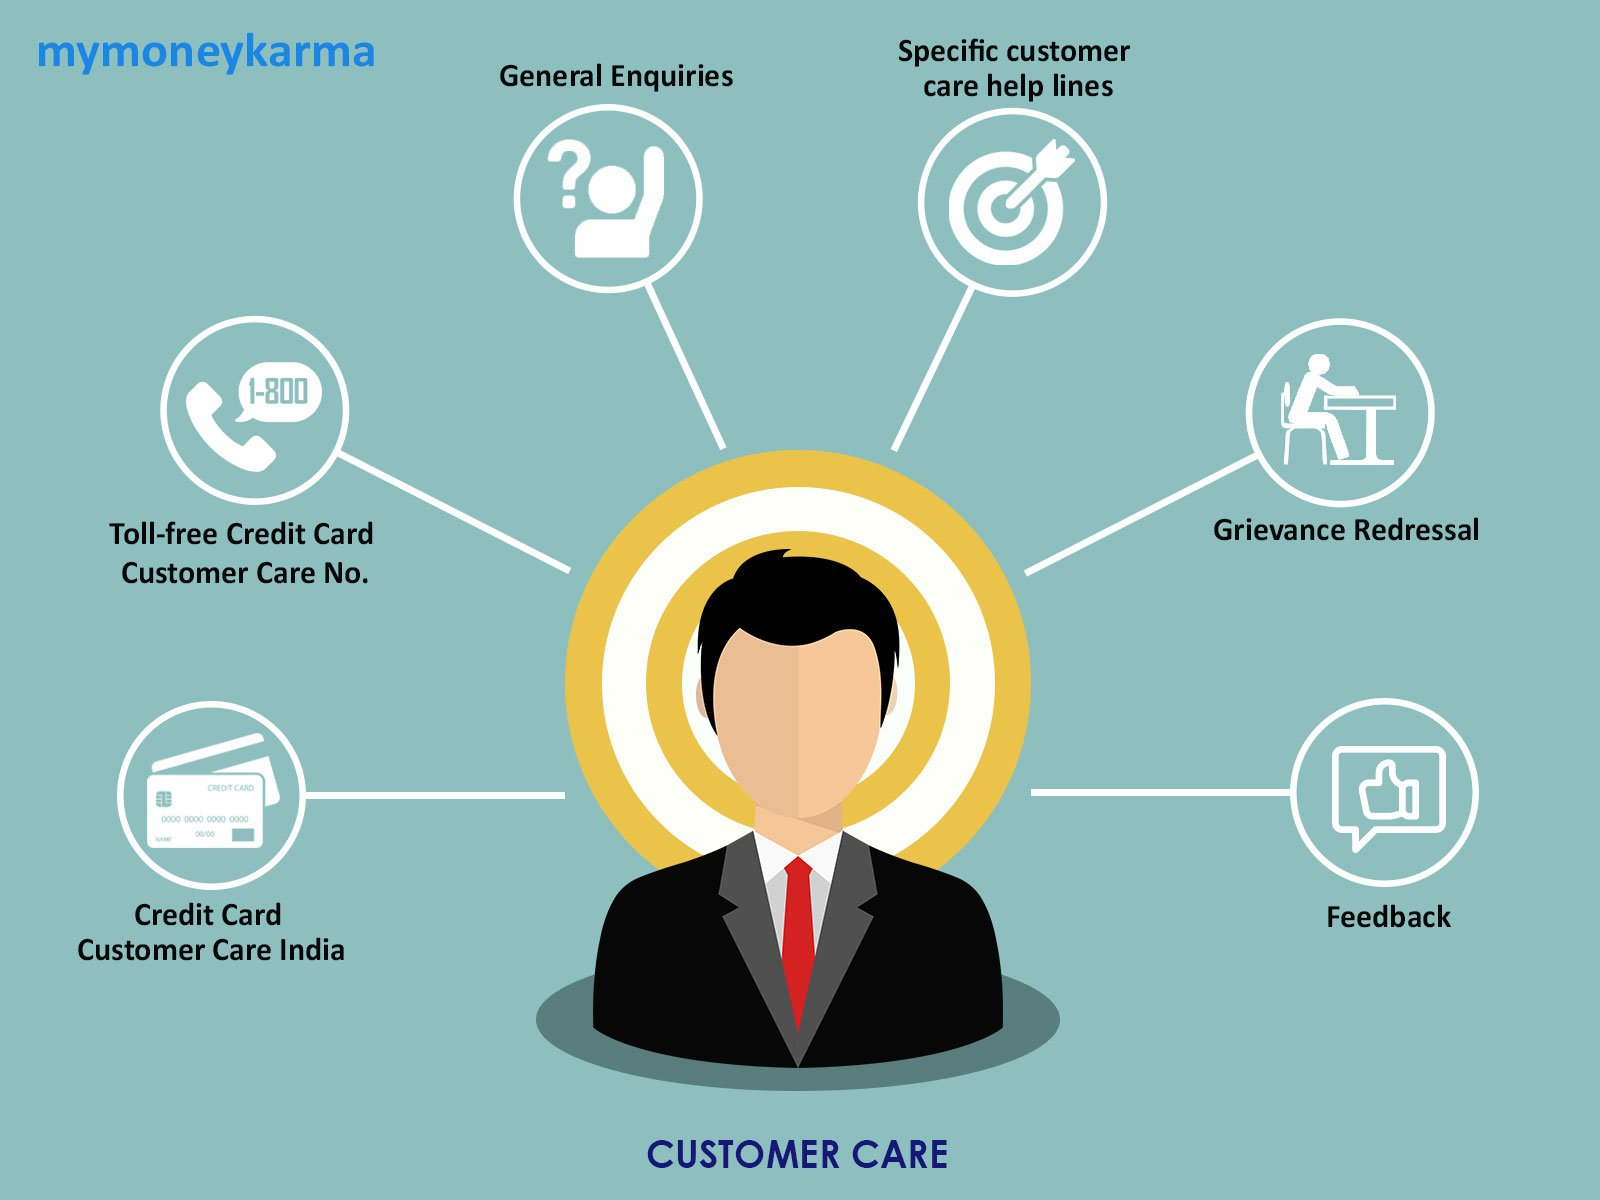 Credit card Customer Care